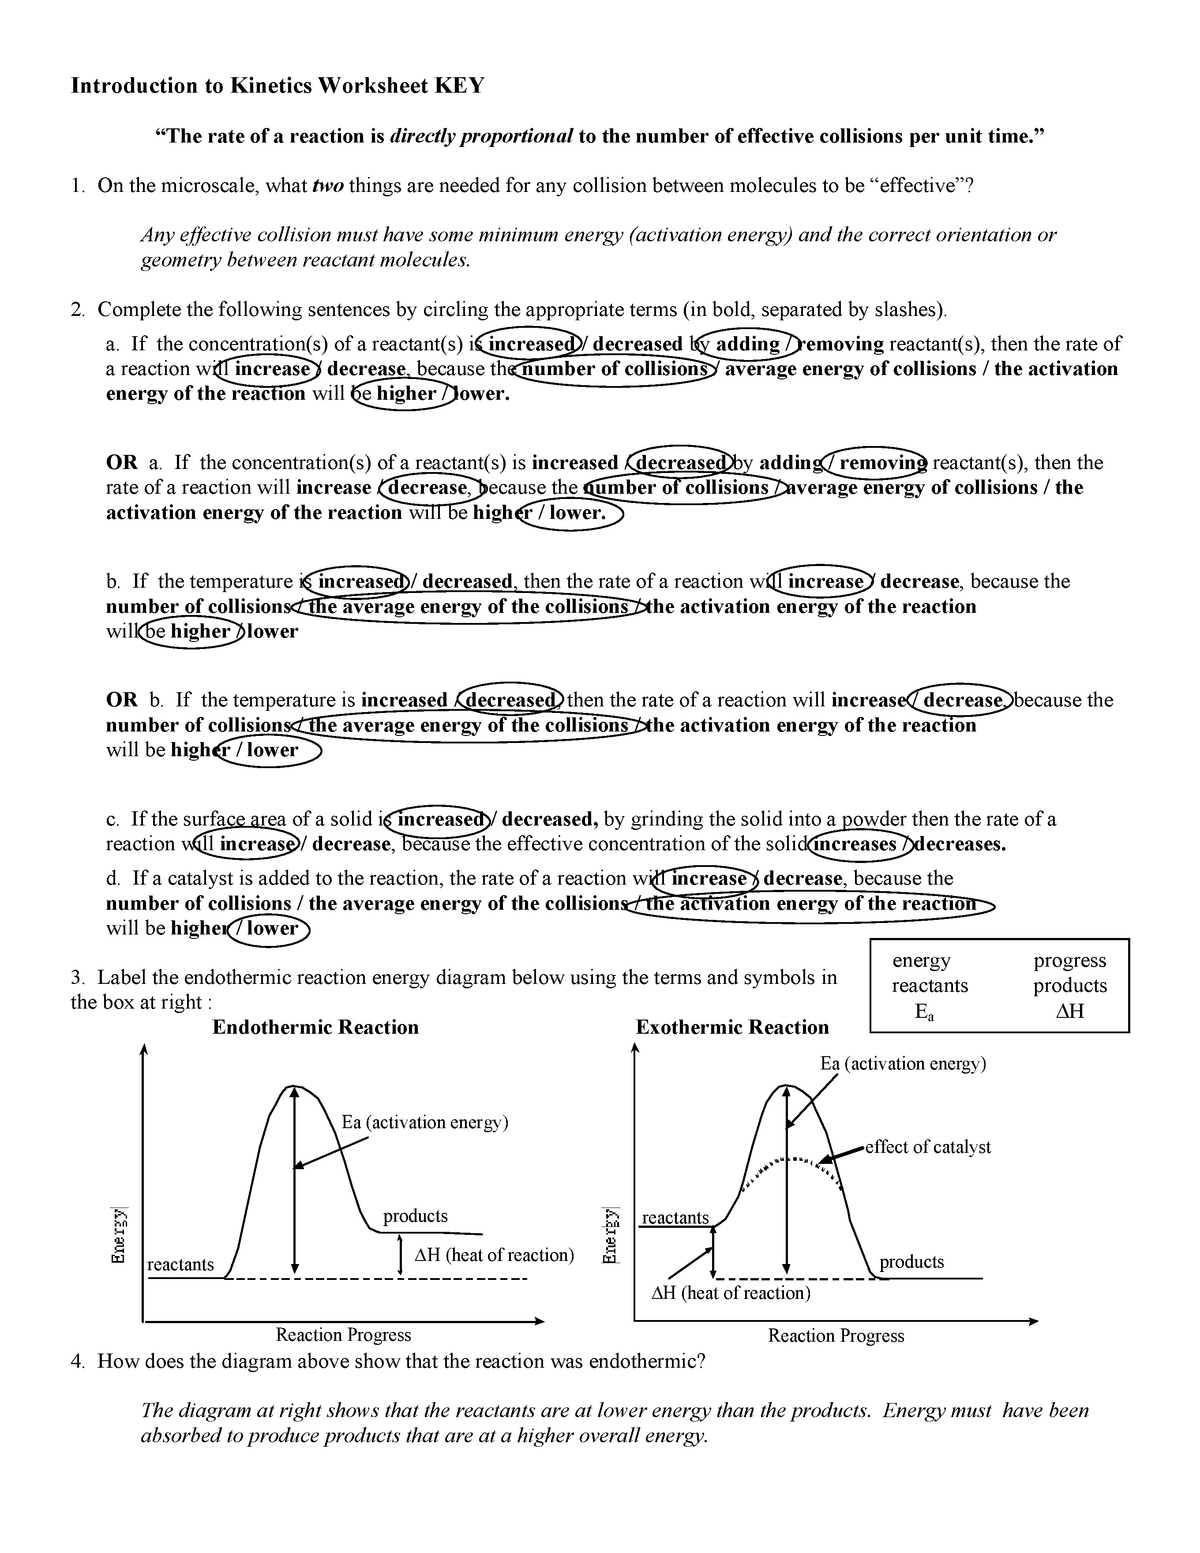 Intro Kinetics WKS KEY - Dr. F - CHEM 10060: General ...